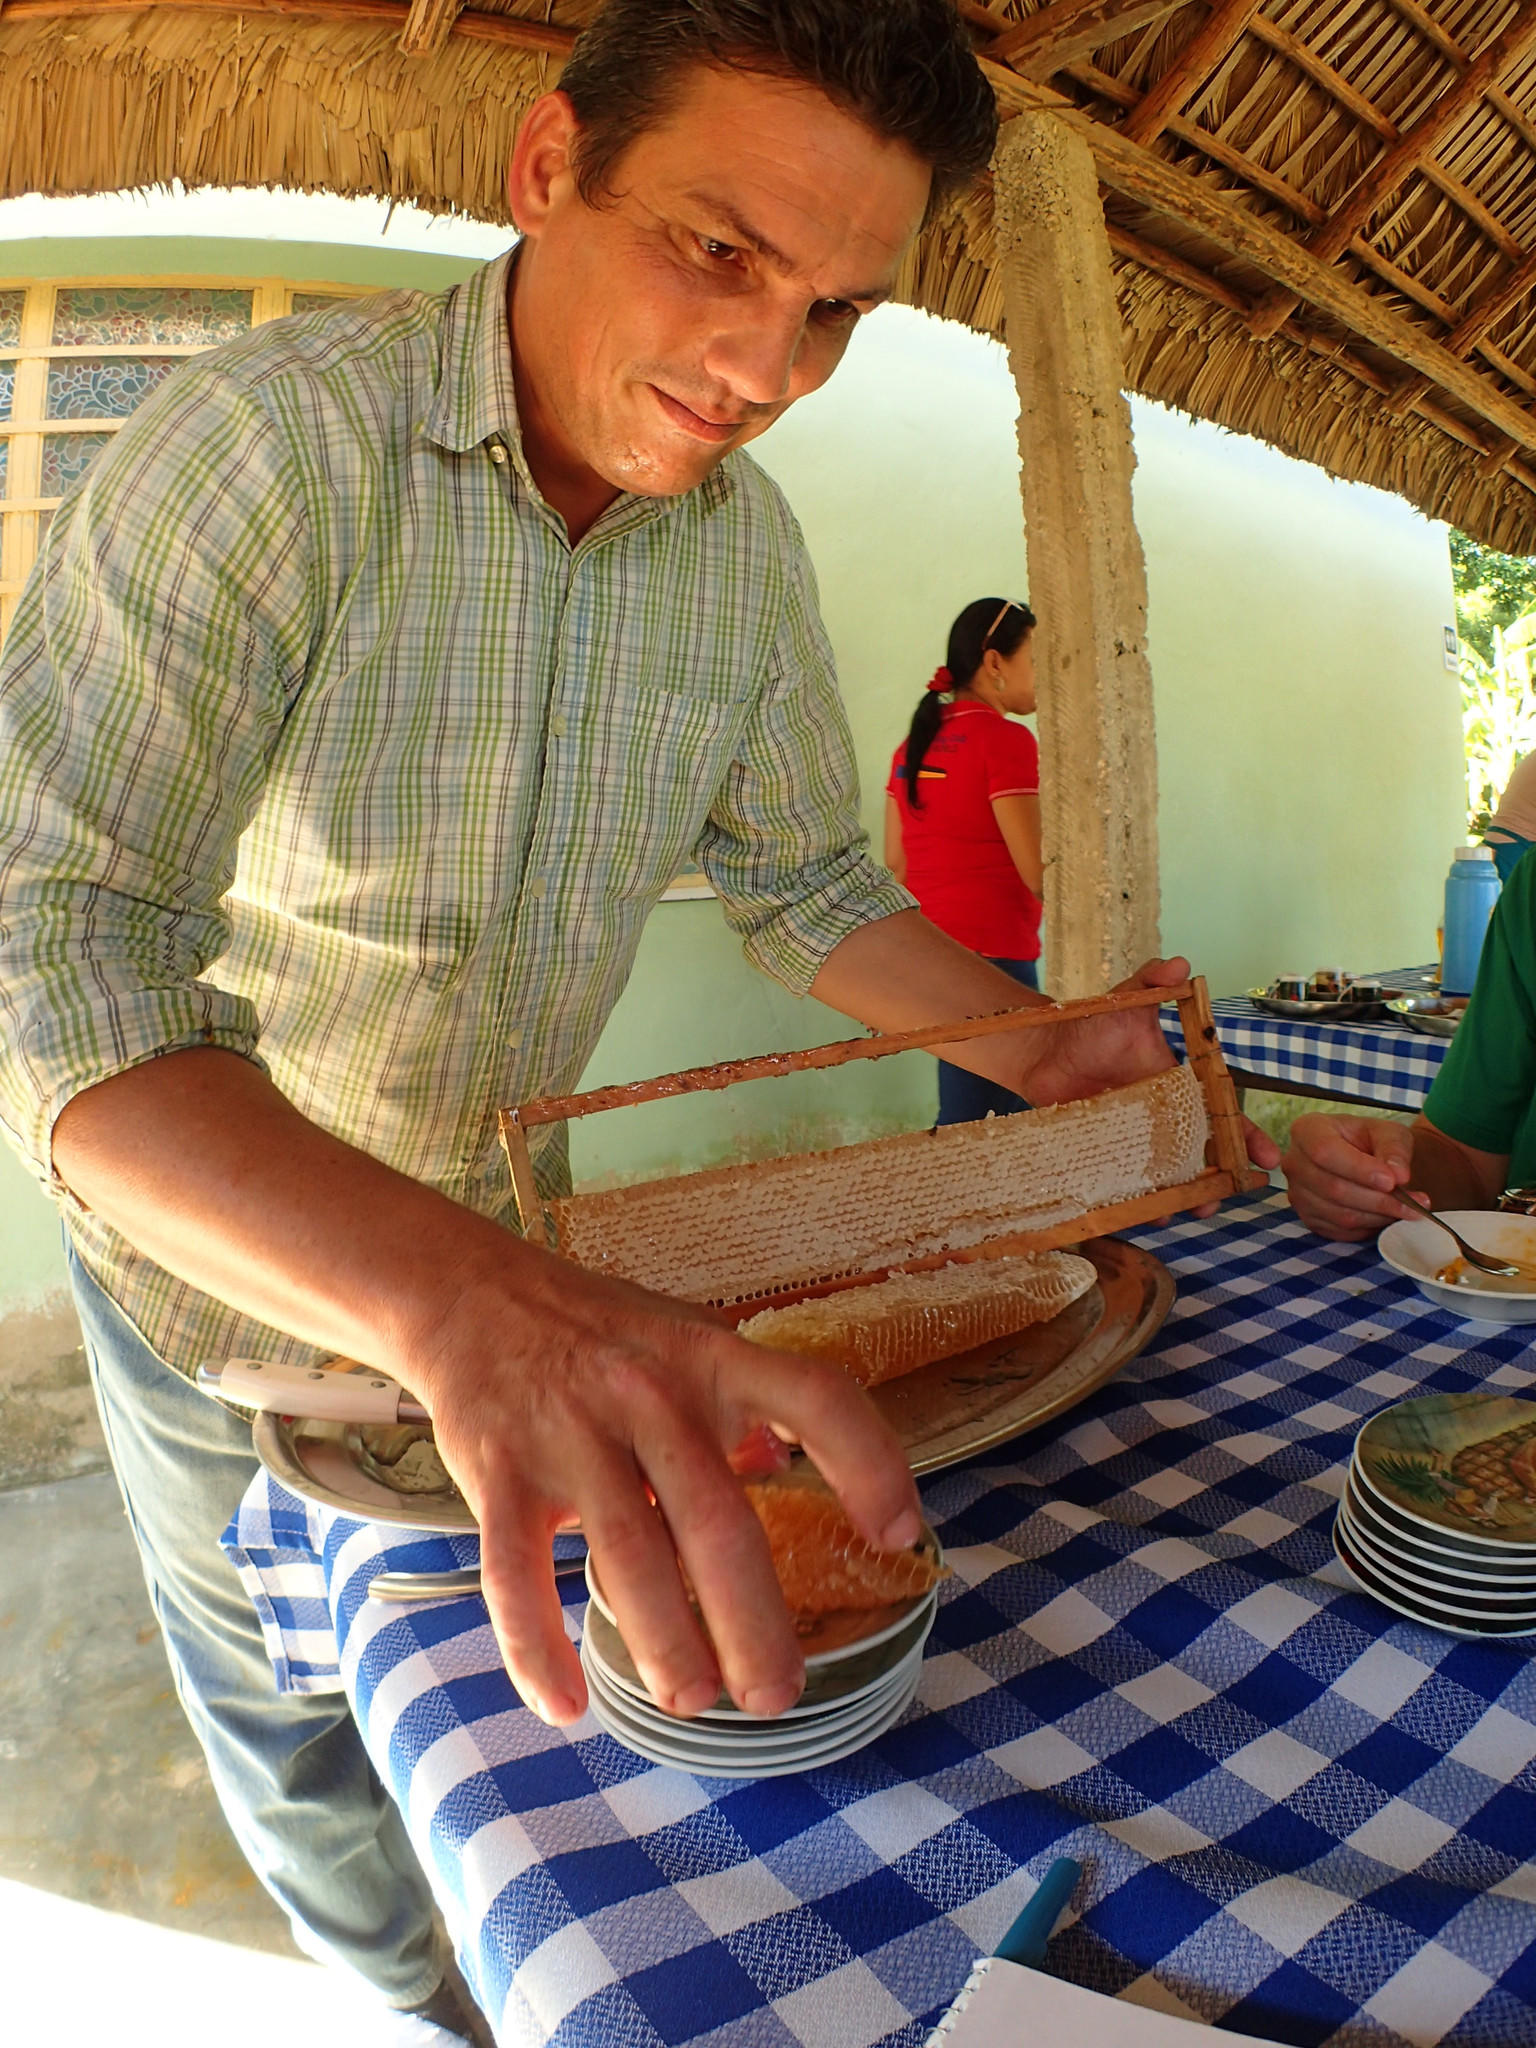 Fernando Funes serves chunks of honeycomb at Finca Marta, his organic farm located about an hour west of Havana.